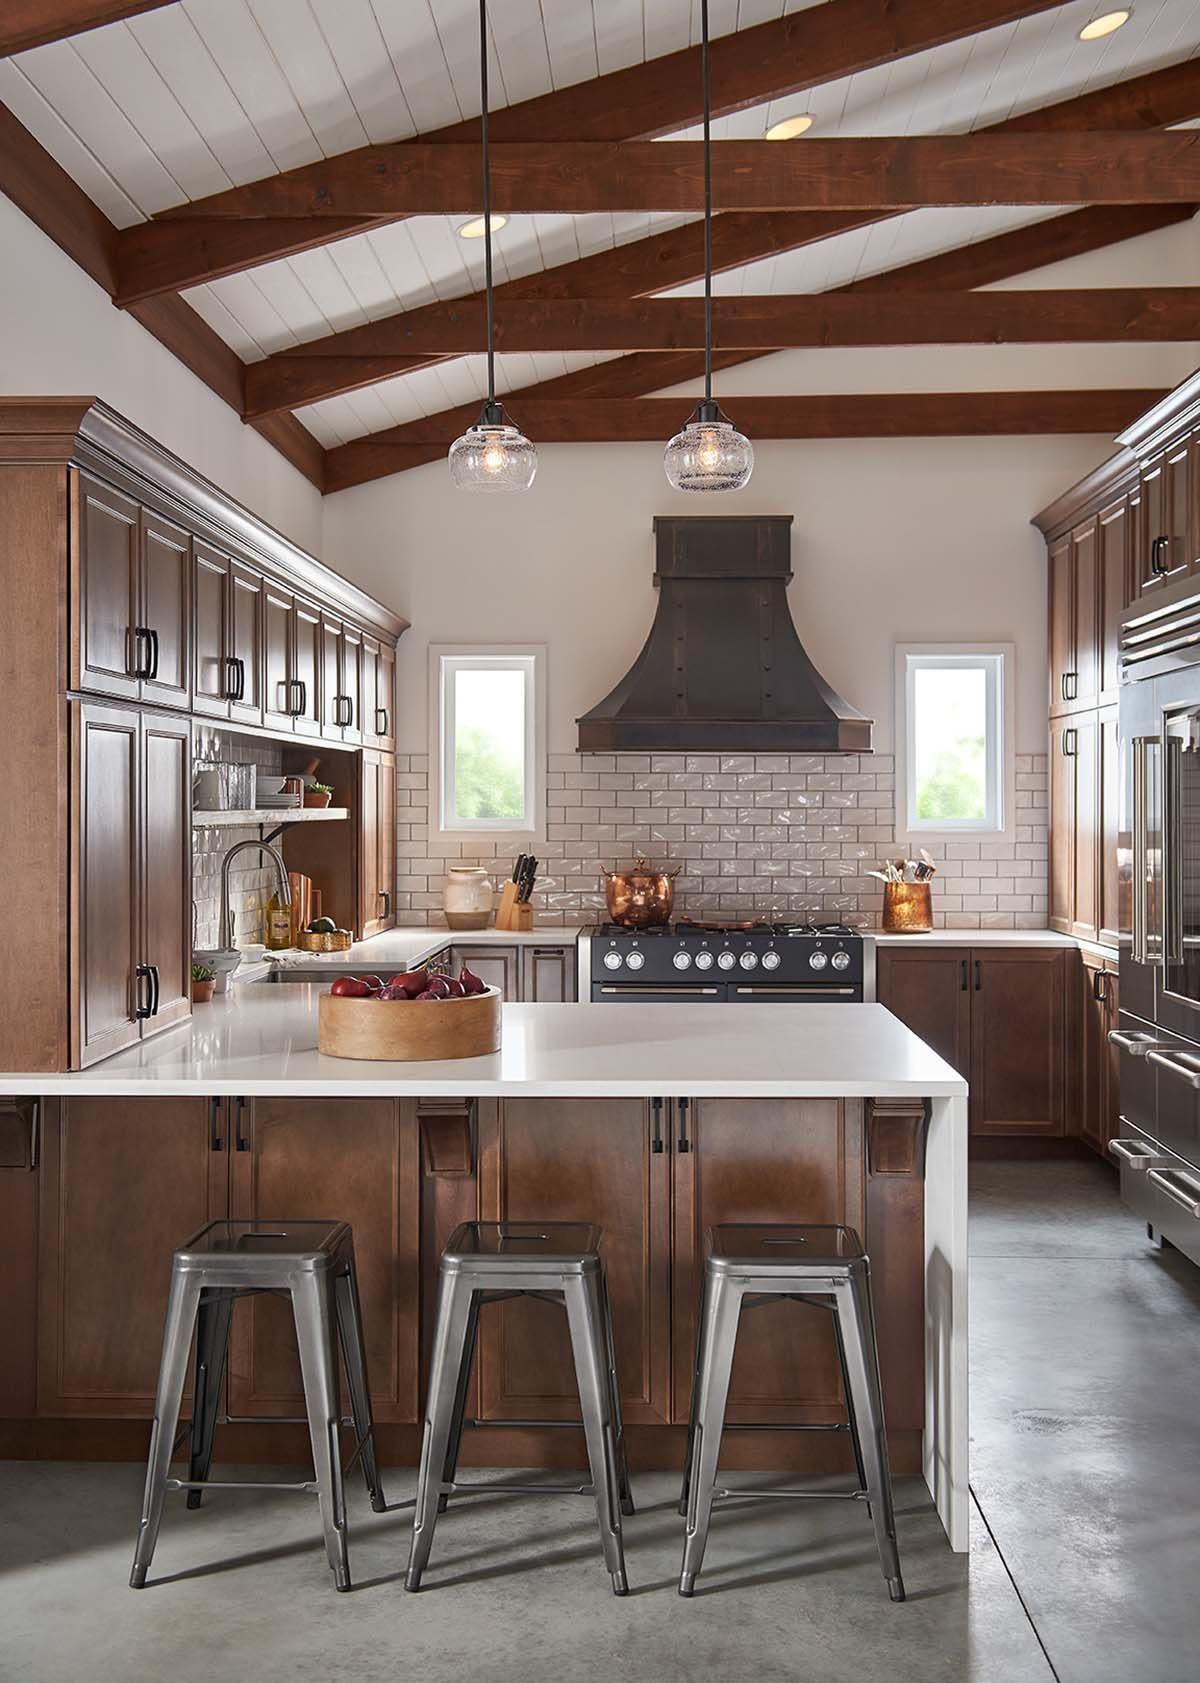 Designing With Maple Truffle in 2019 | Maple kitchen ... on Maple Cabinet Kitchen Ideas  id=33474